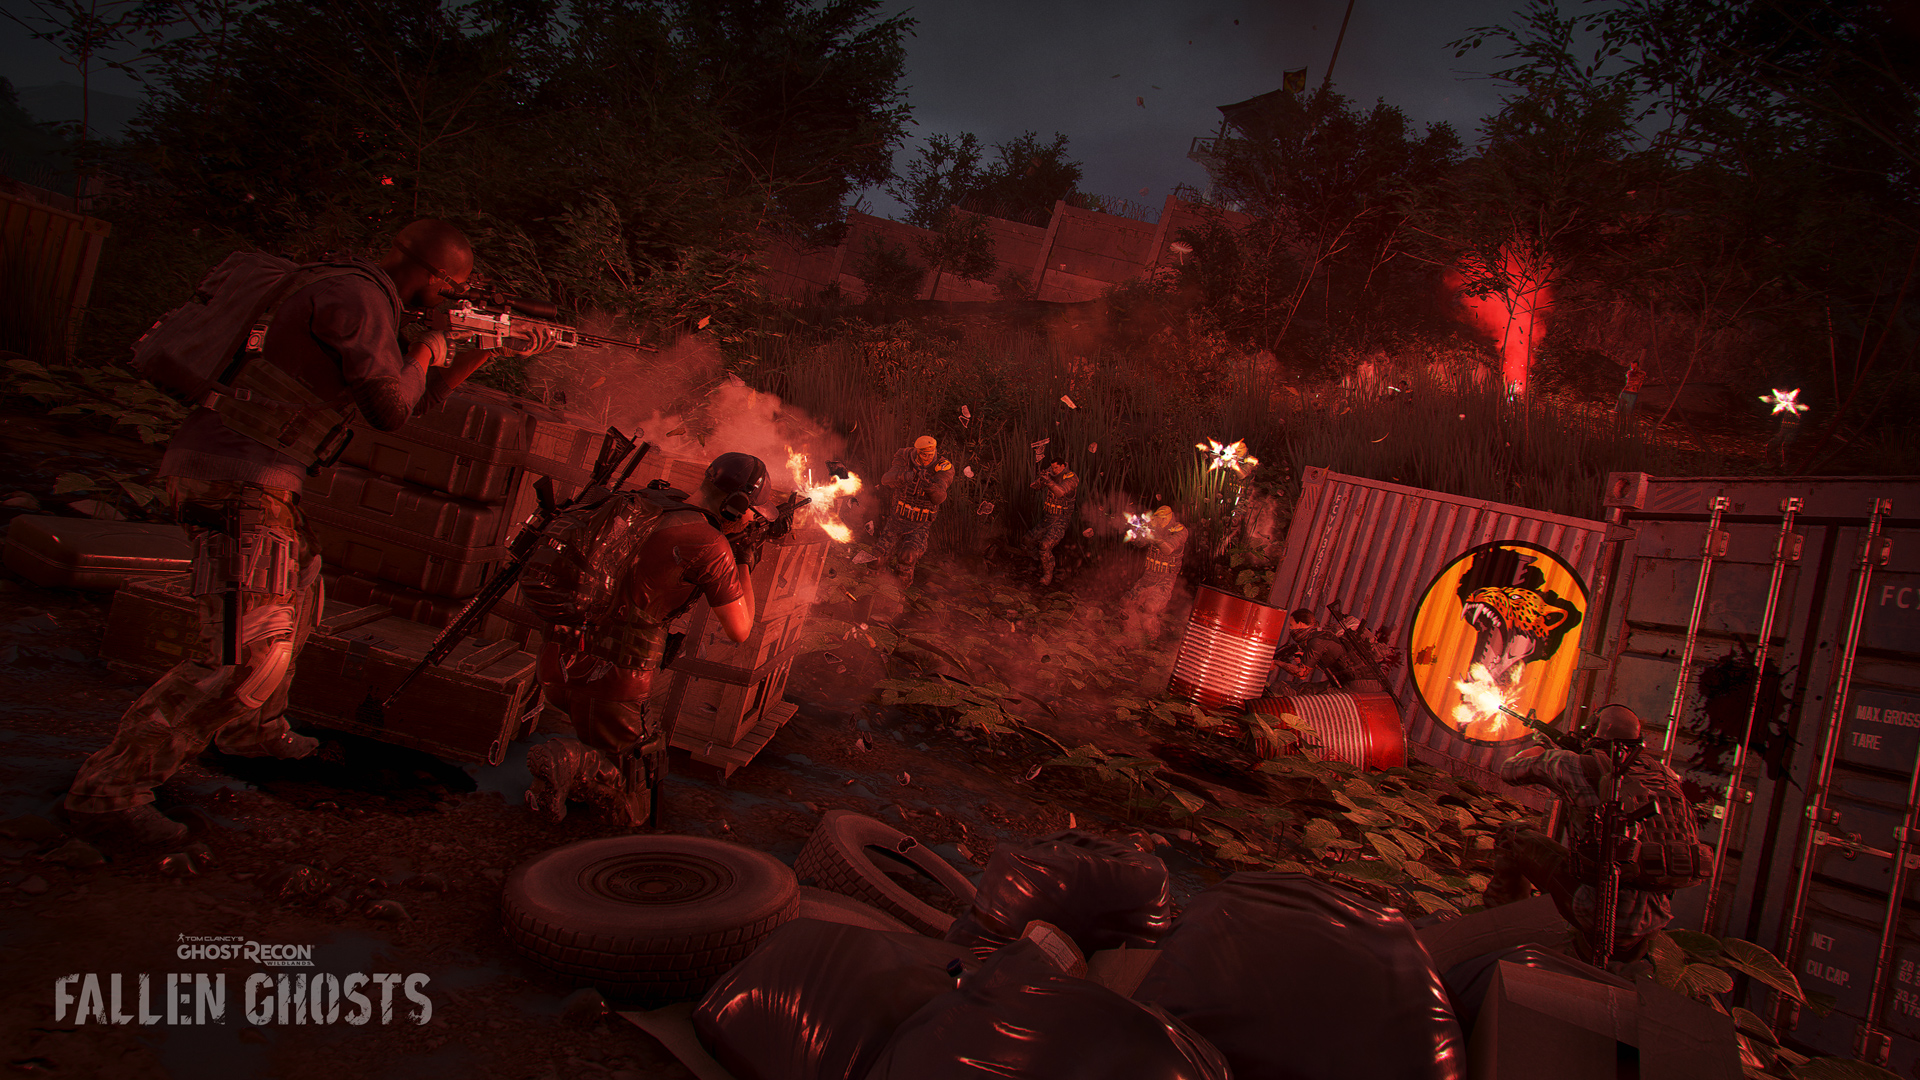 Ghost Recon Wildlands picks right back up with the Fallen Ghosts expan